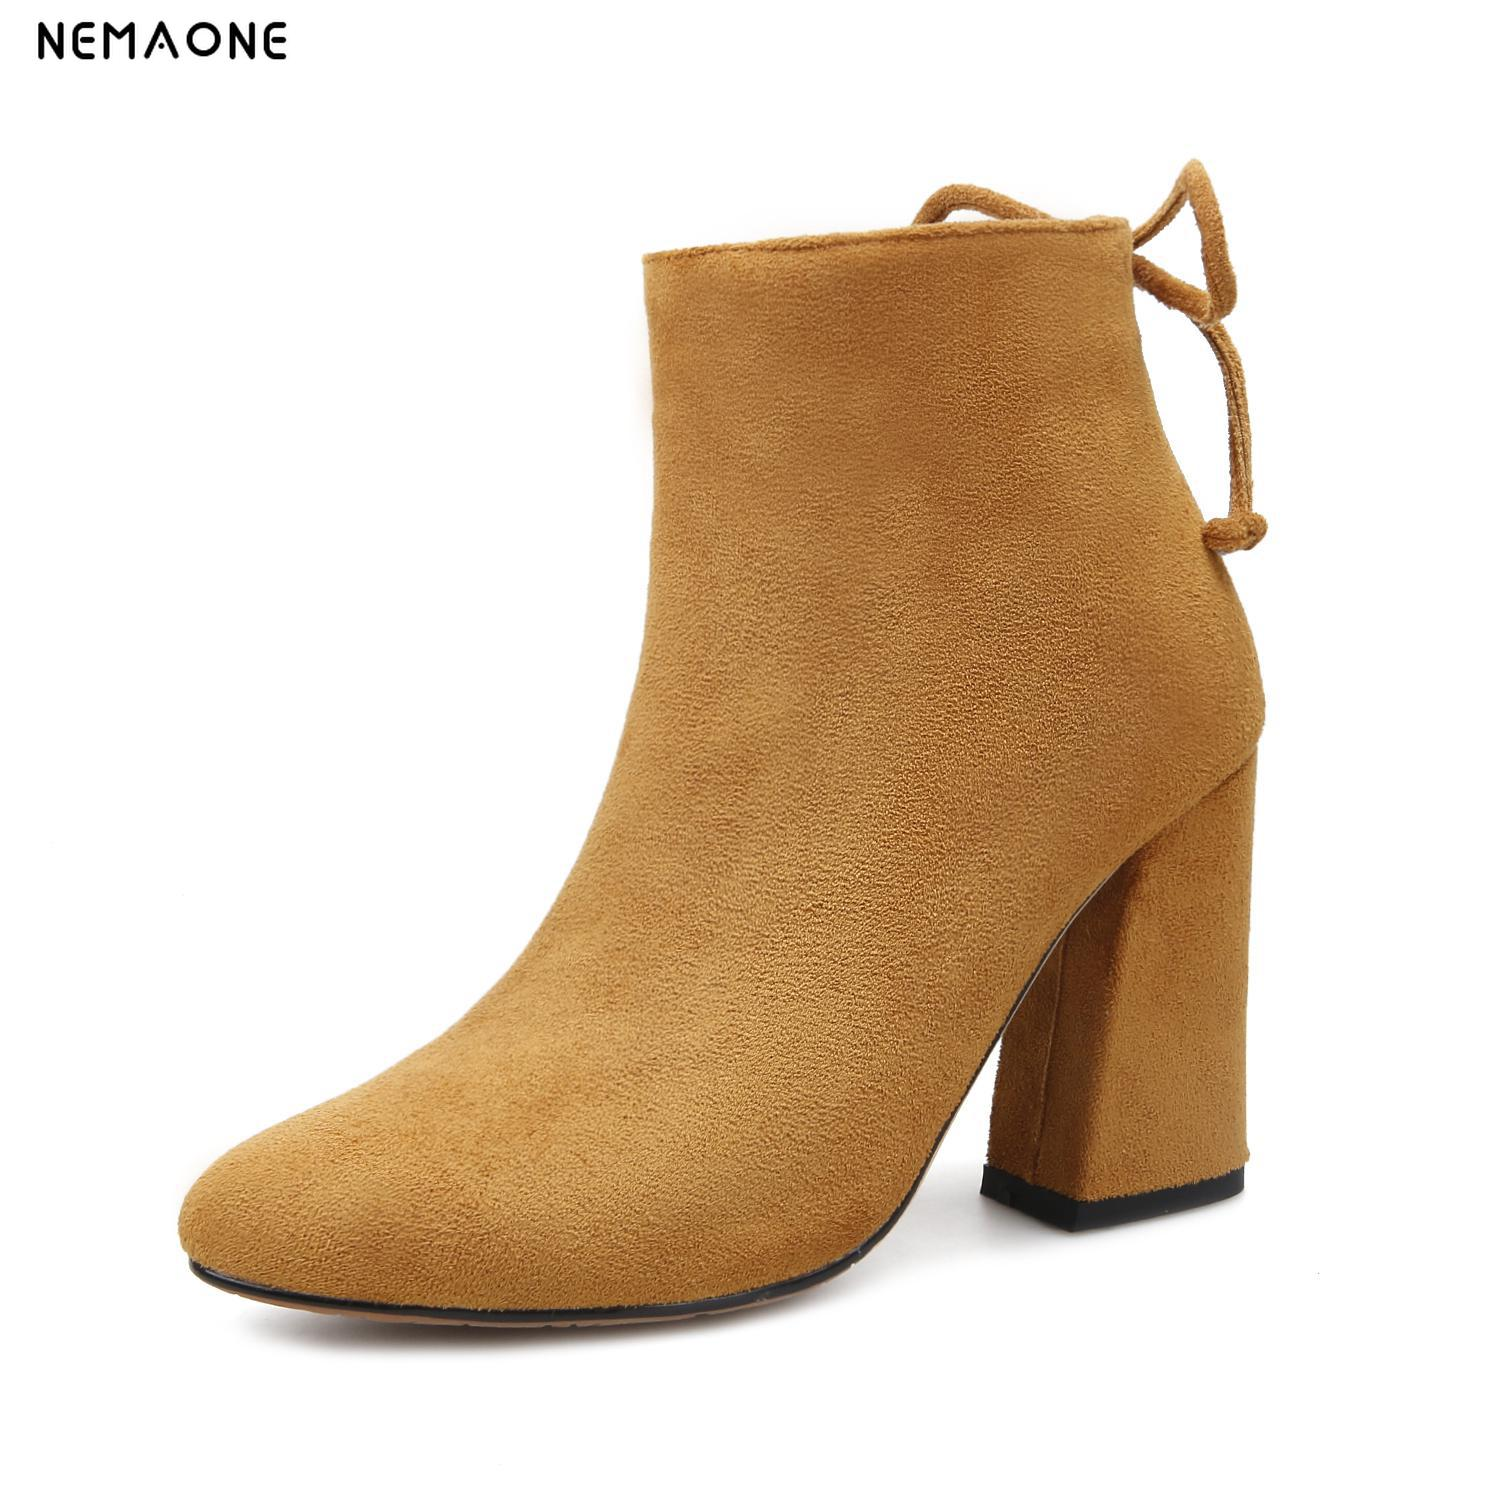 NEMAONE 2019 new ankle boots fashion square toe thick heel women boots high heel genuine leather lady boots us size 9 10 11 12 basic 2018 women thick heel ankle boots black pu fleeces round toe work shoe red heel winter spring lady super high heel boots